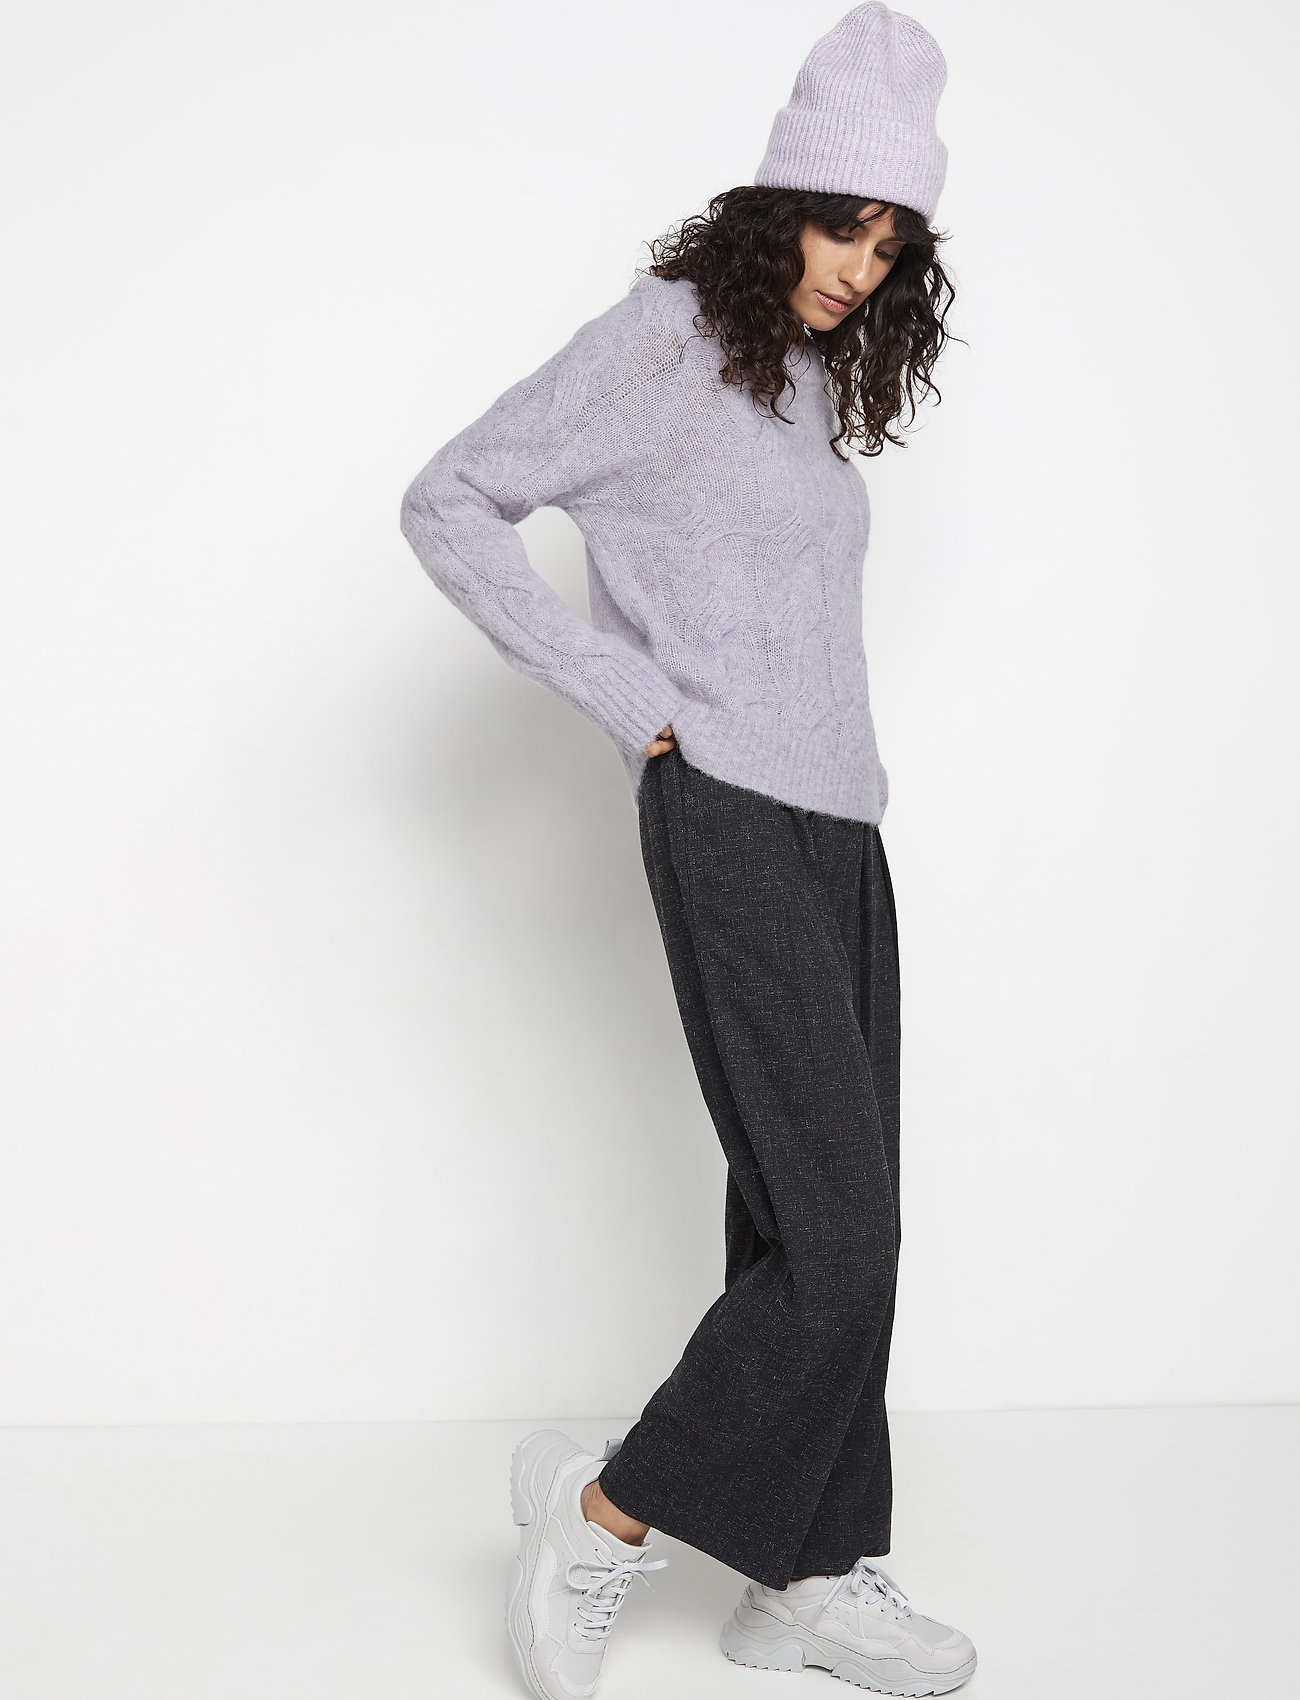 Sweater Hilma (Light Lilac) (349.30 kr) - Lindex